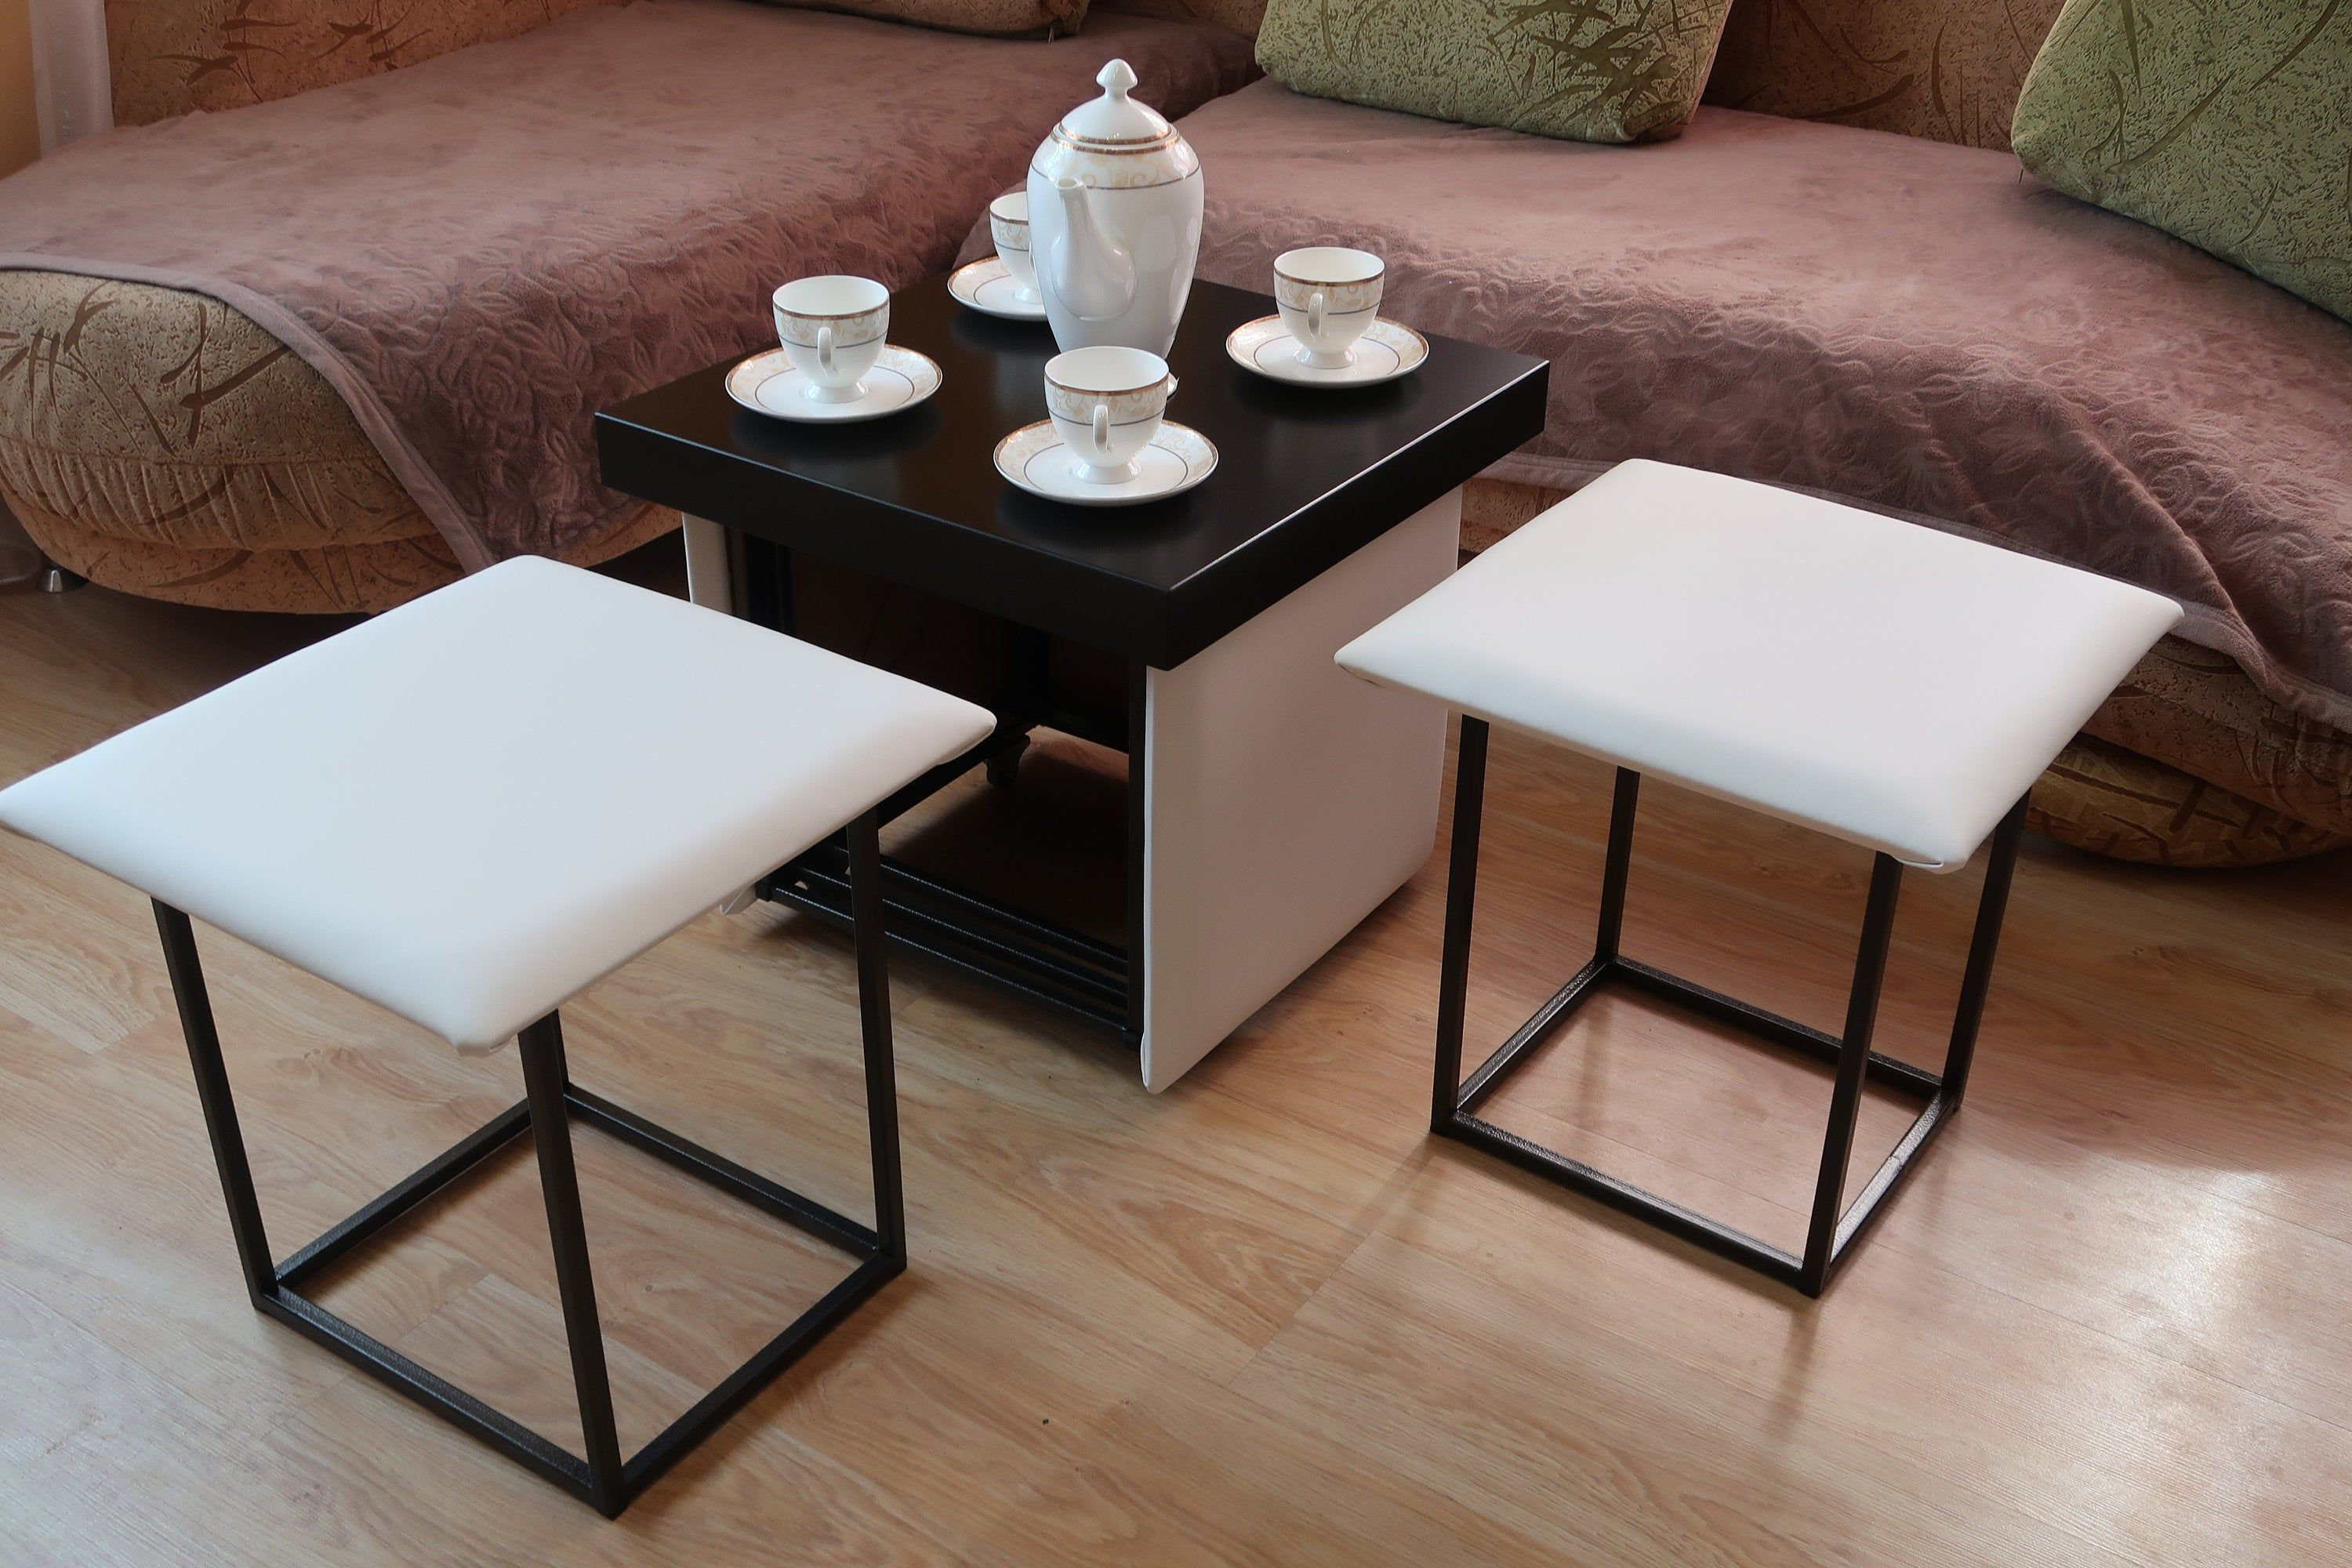 Cube 7 In 1 Transformer Ottoman Coffee Table Or 5 Chair